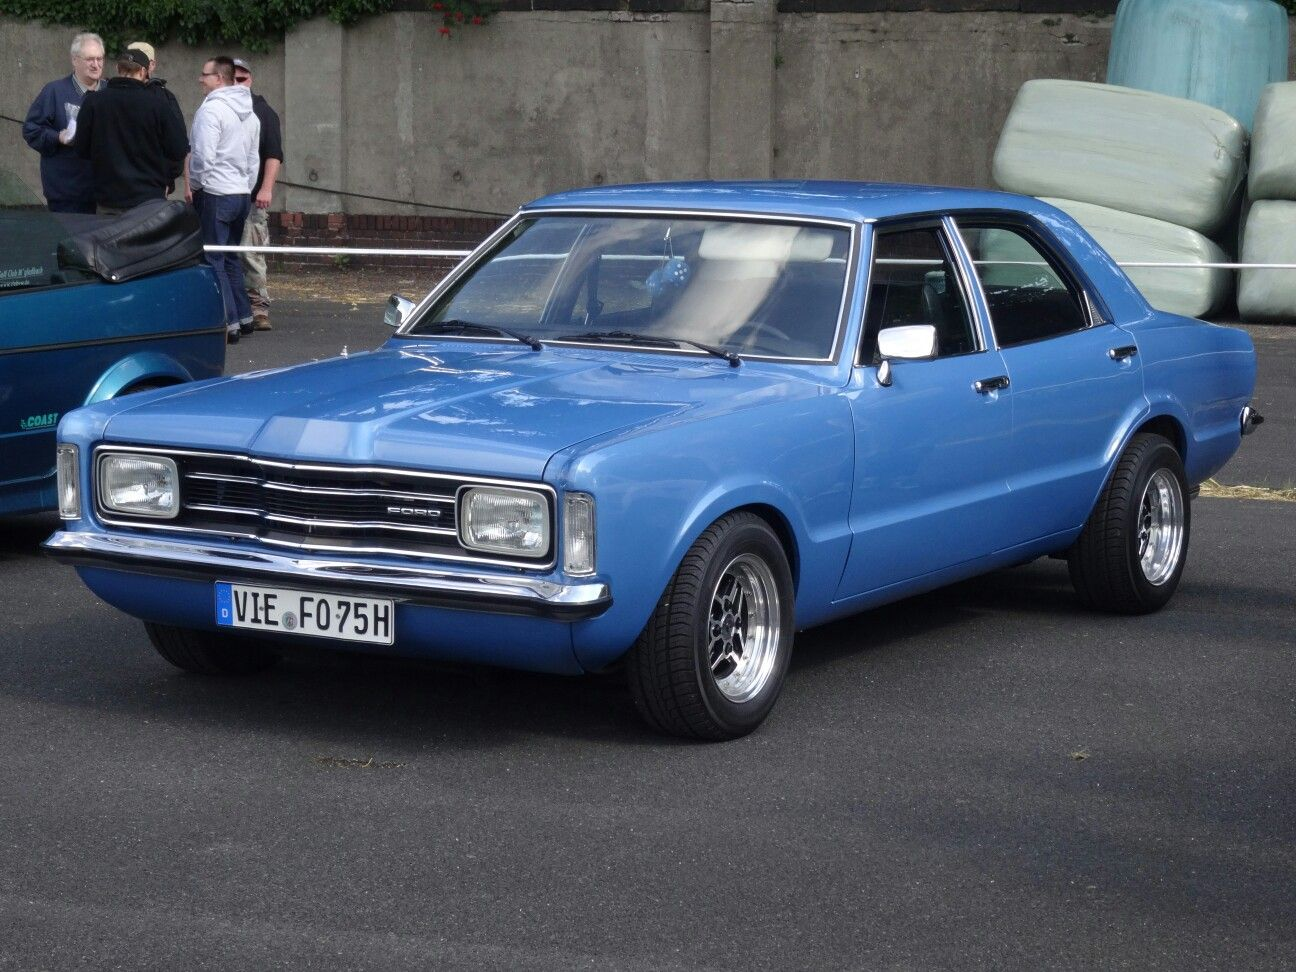 Ford Taunus Mk1 Ford Classic Cars Classic Cars British Classic Cars